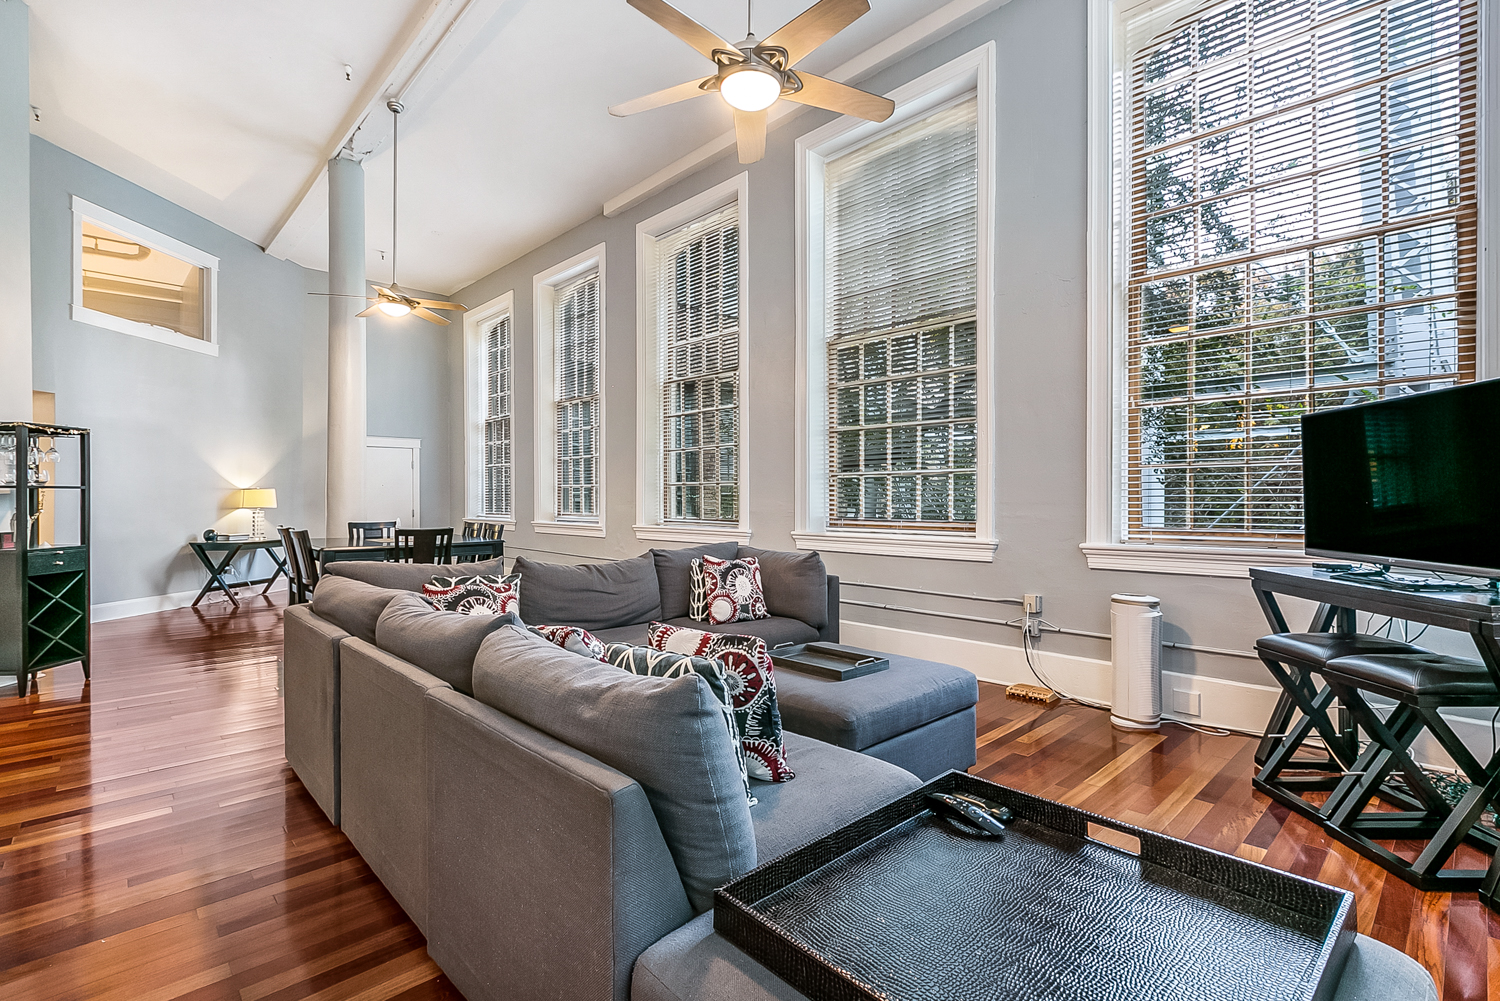 Beautiful 3 bed/2 bath corner unit at the Cotton Mill.  8 tall incredible windows that make this unit extra special bringing in lots of natural light that over looks the courtyard. Tall ceilings, open floor plan, wood floors. Parking included. Big Gym! Pool! 24/7 doorman!